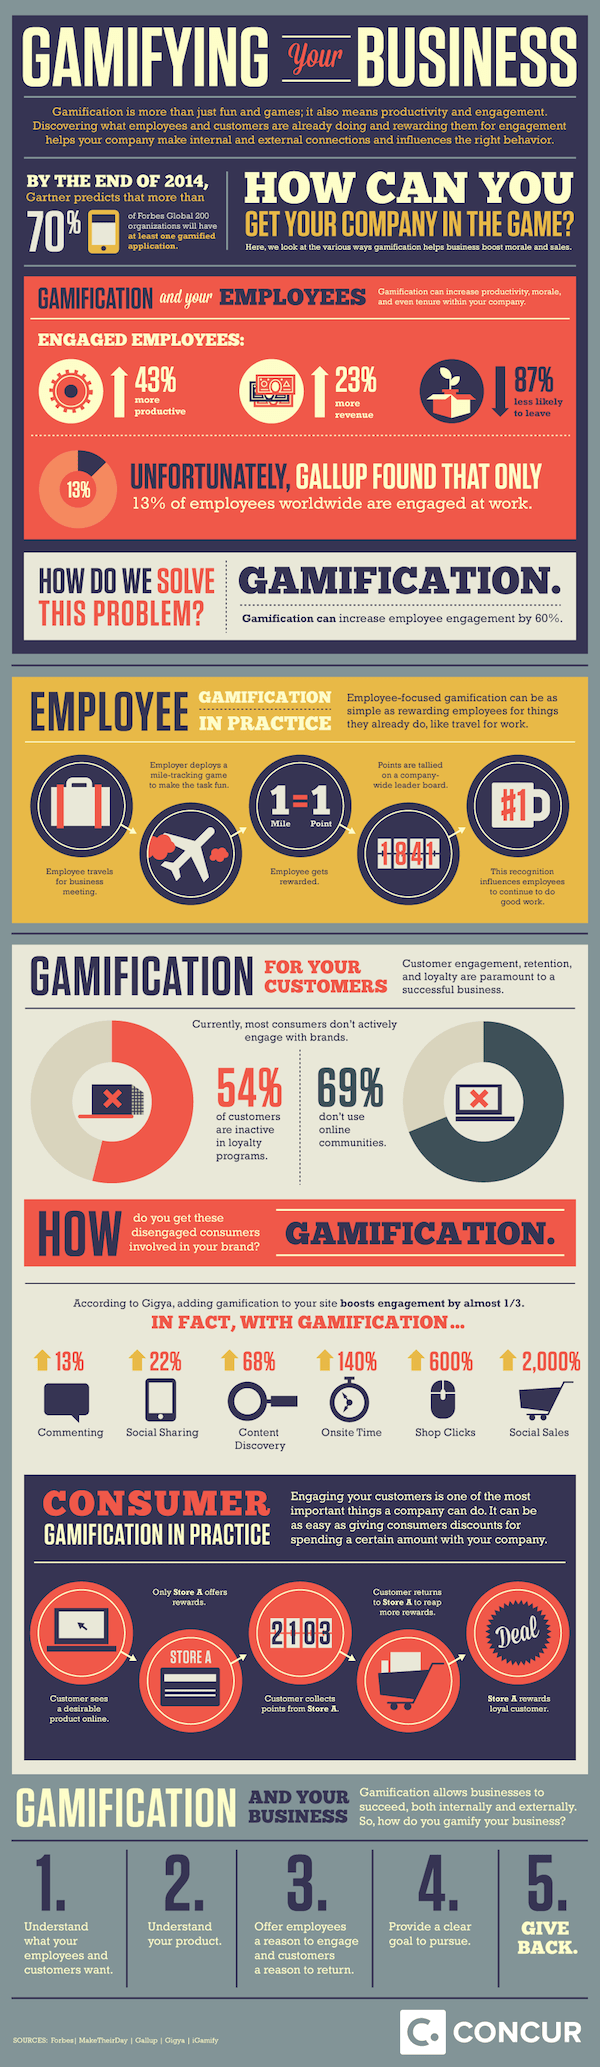 Gamifying your Business